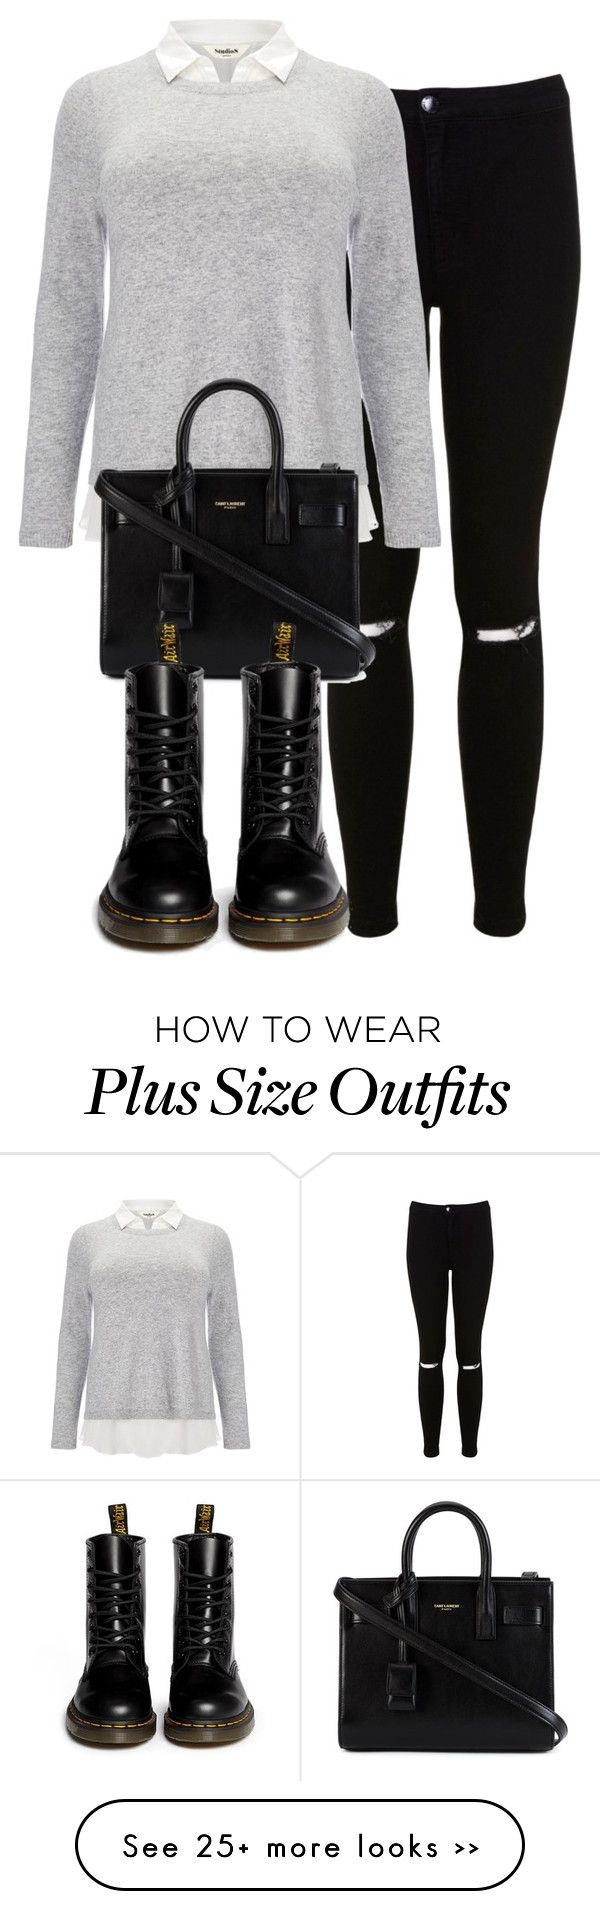 """Untitled #349"" by allysa-bojador on Polyvore featuring Miss Selfridge, Studio 8, Yves Saint Laurent and Dr. Martens"